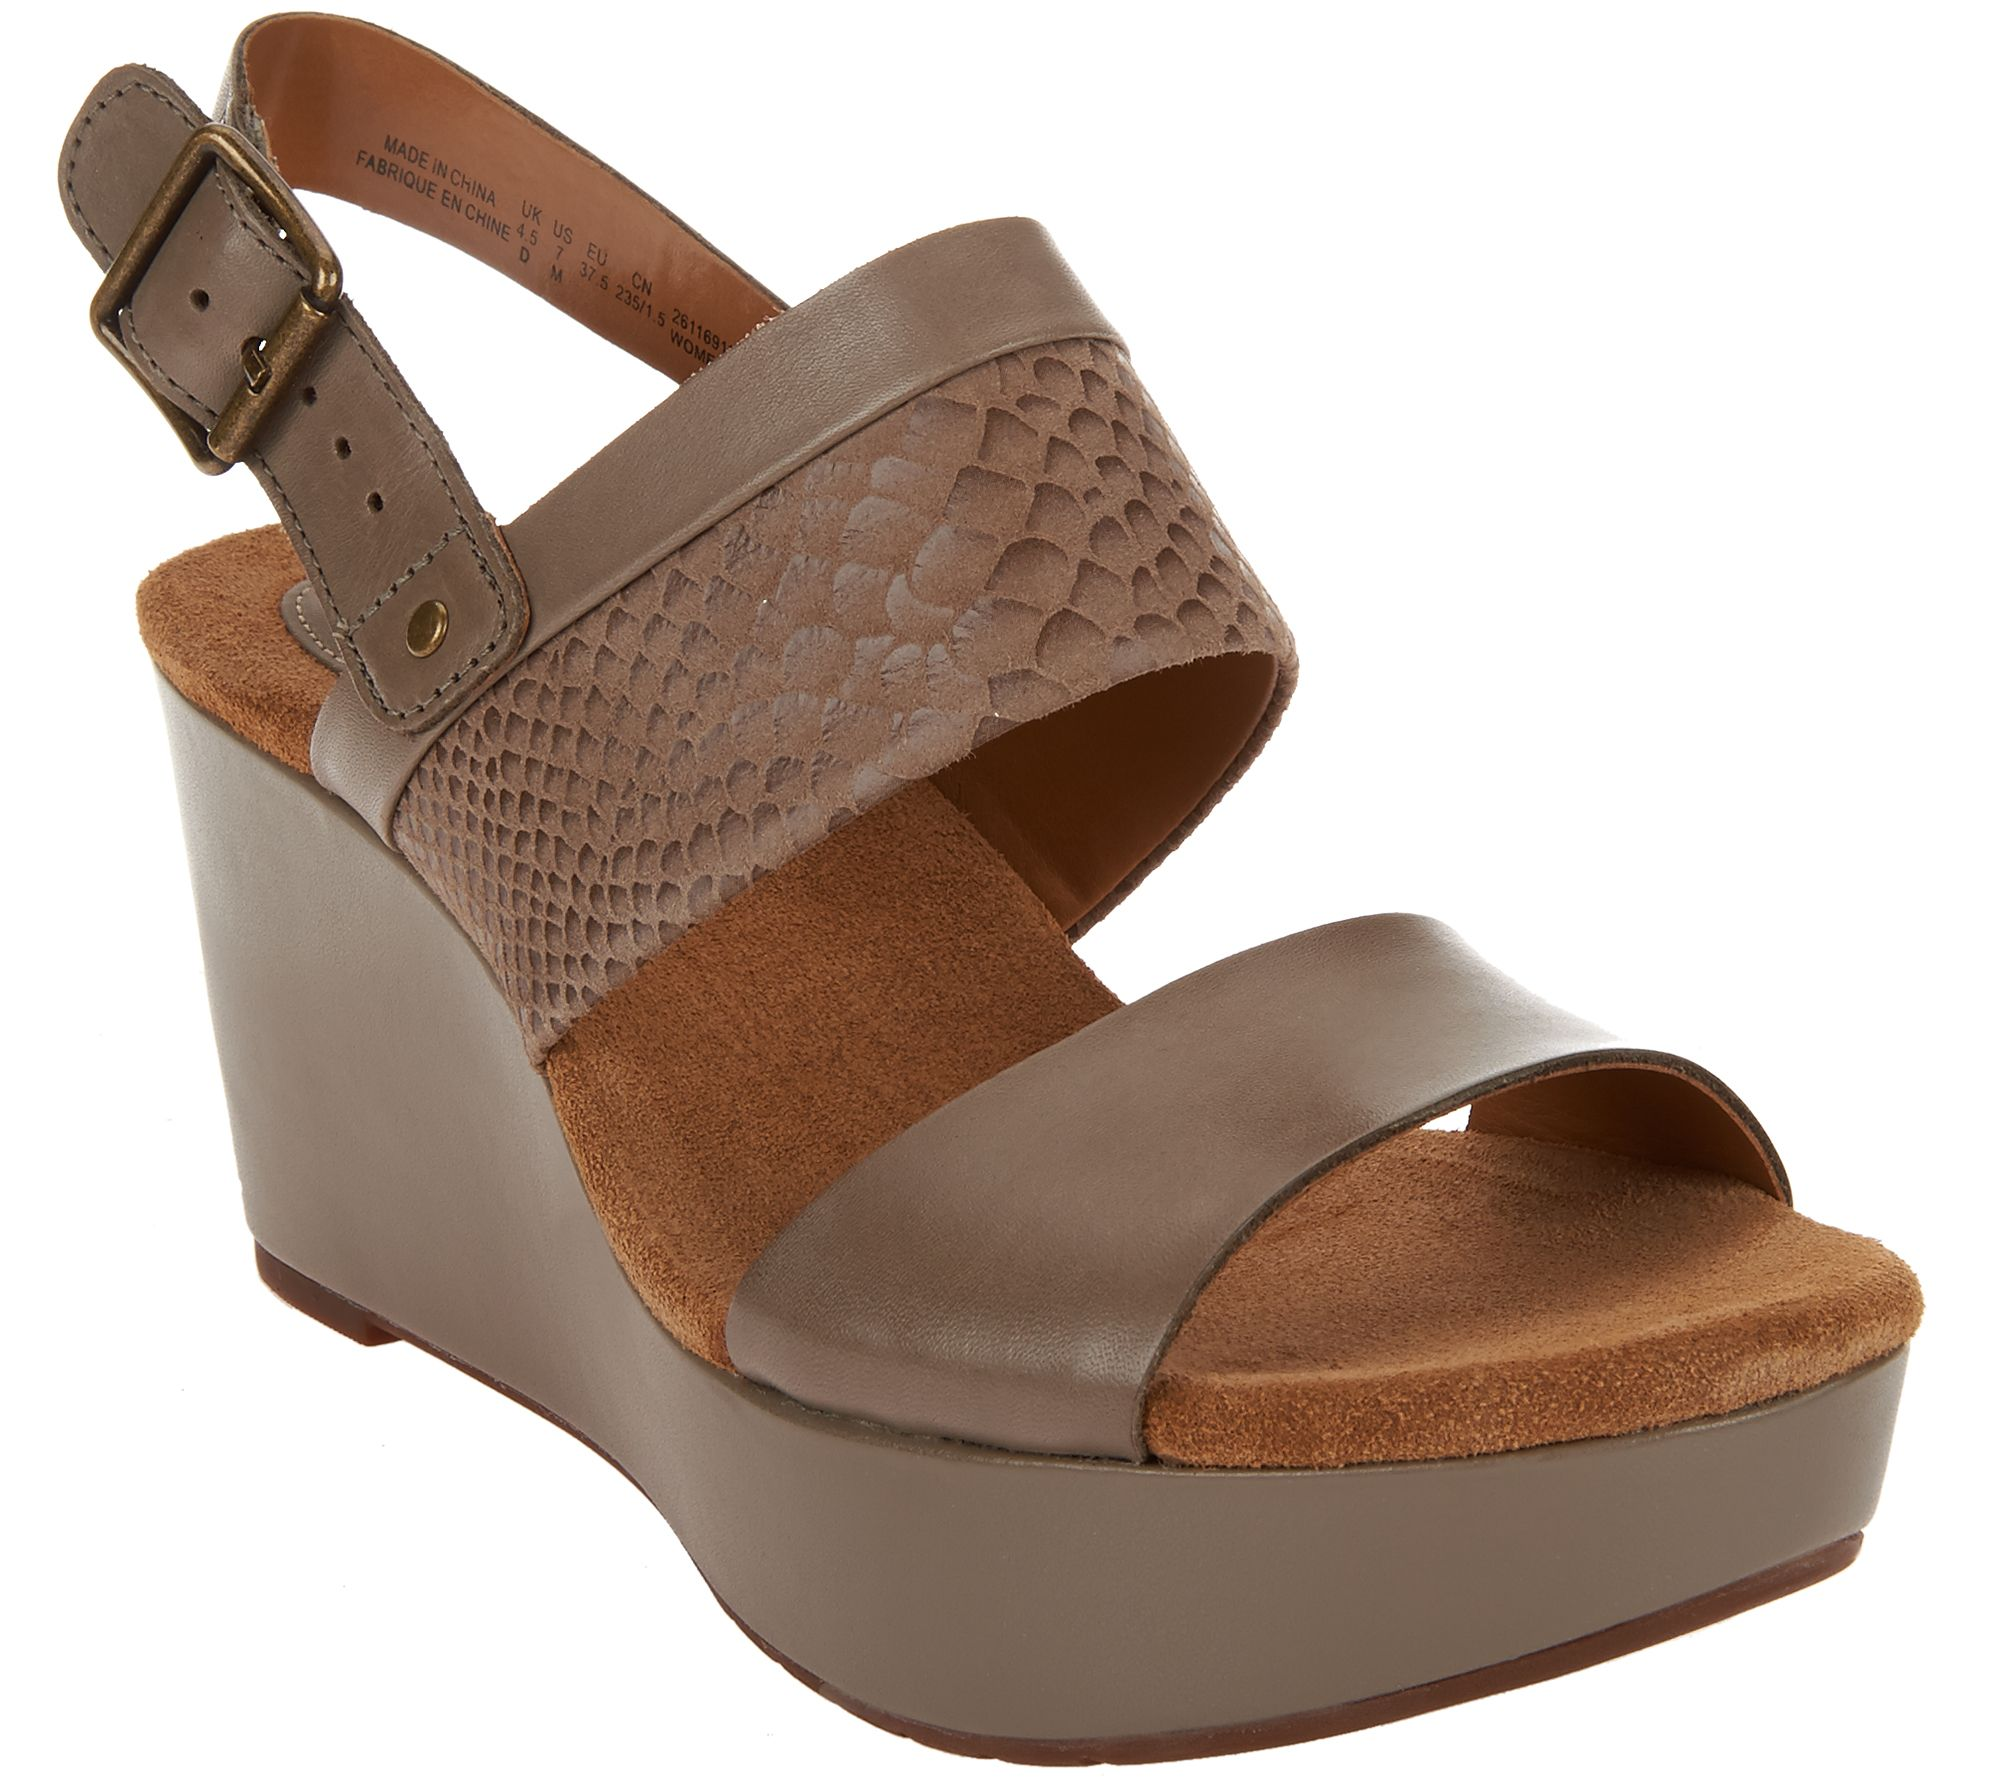 34c4f018d785 Clarks Artisan Leather Multi-strap Wedge Sandals - Caslynn Kat - Page 1 —  QVC.com